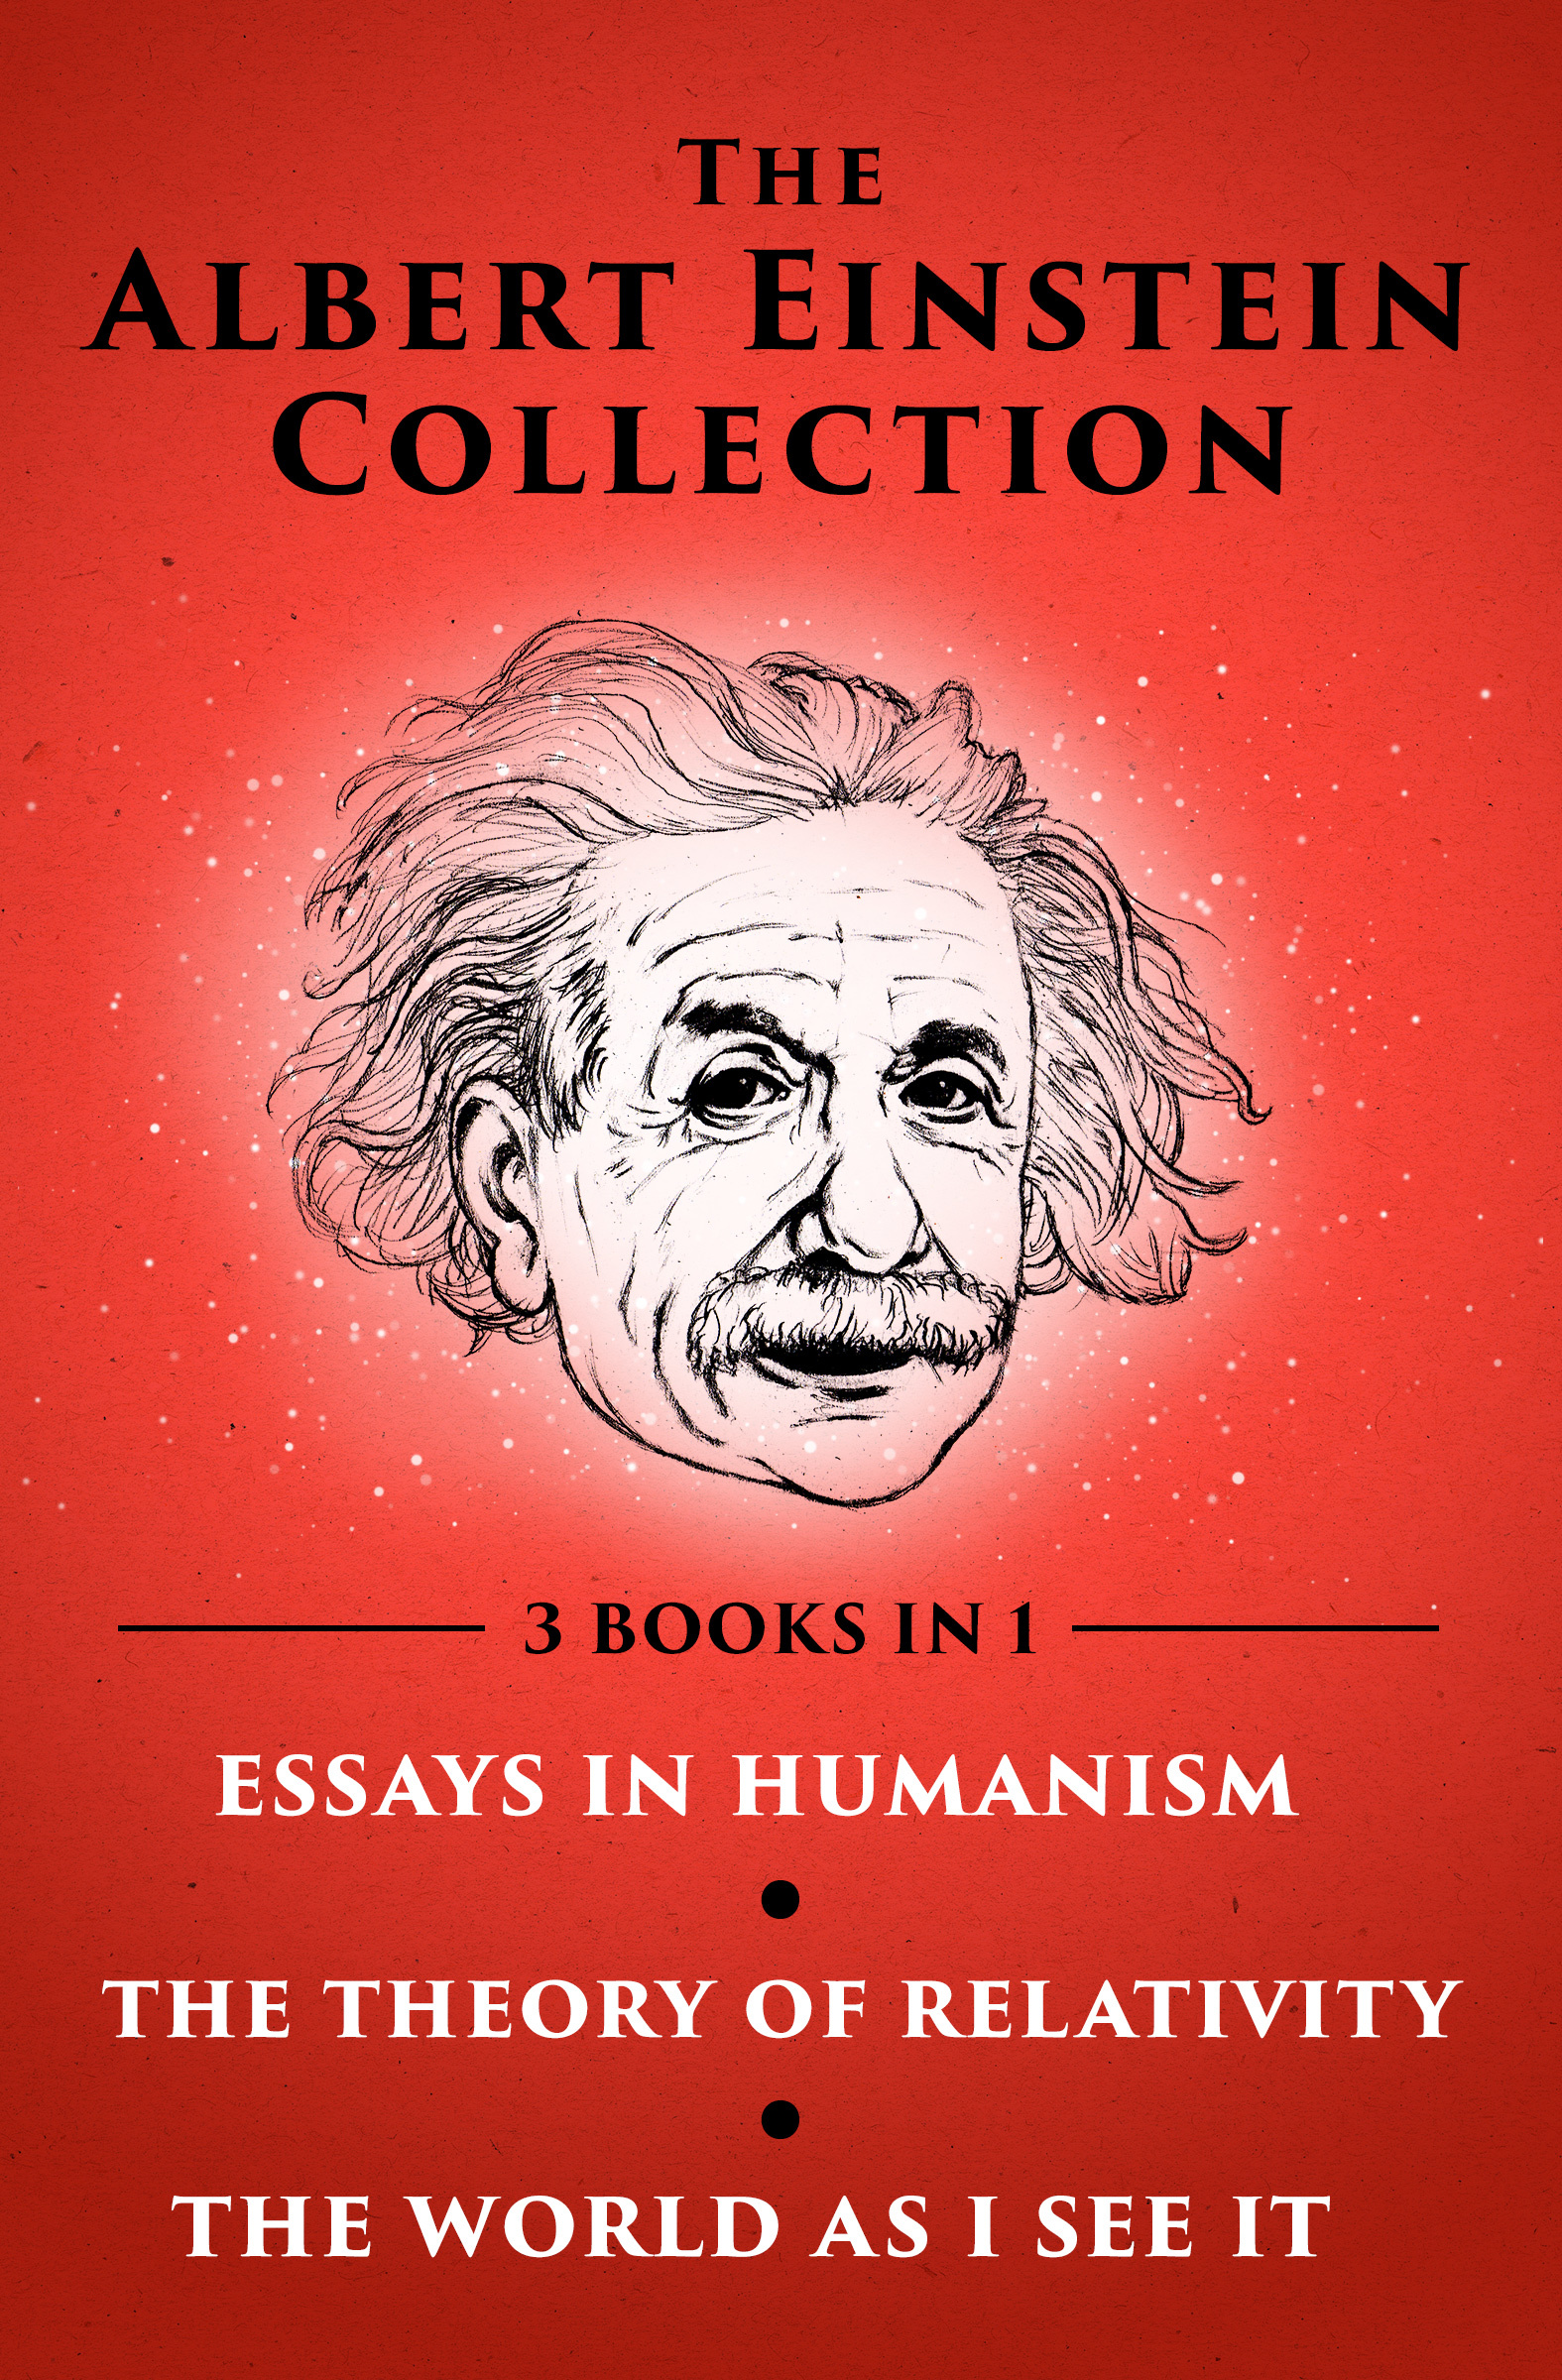 The Albert Einstein Collection: Essays in Humanism, The Theory of Relativity, and The World As I See It